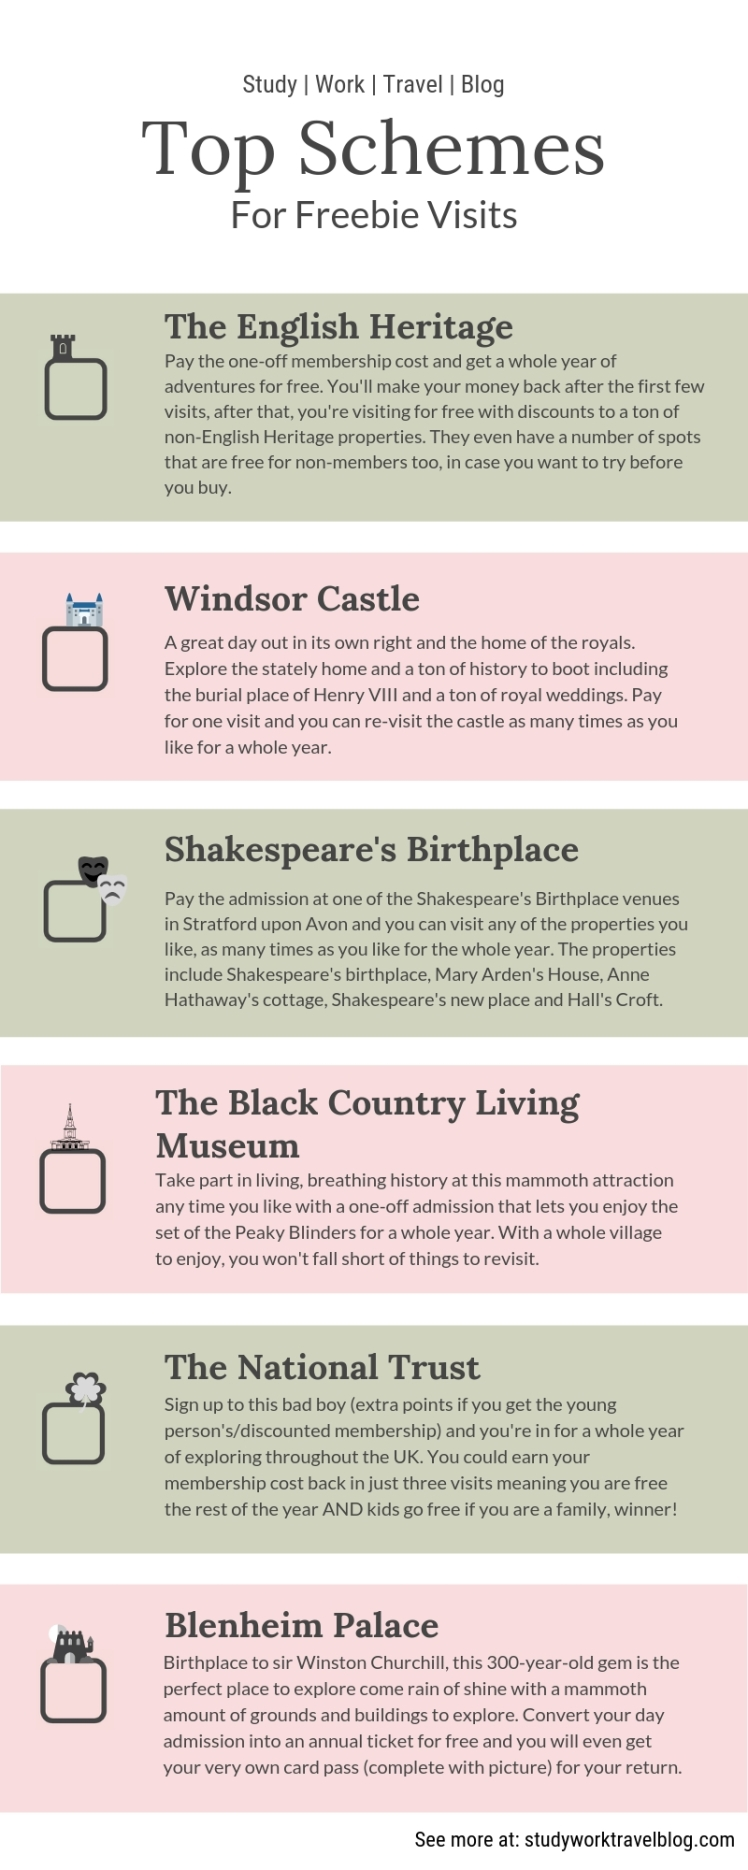 Top schemes for freebie visits infographic from study work travel blog